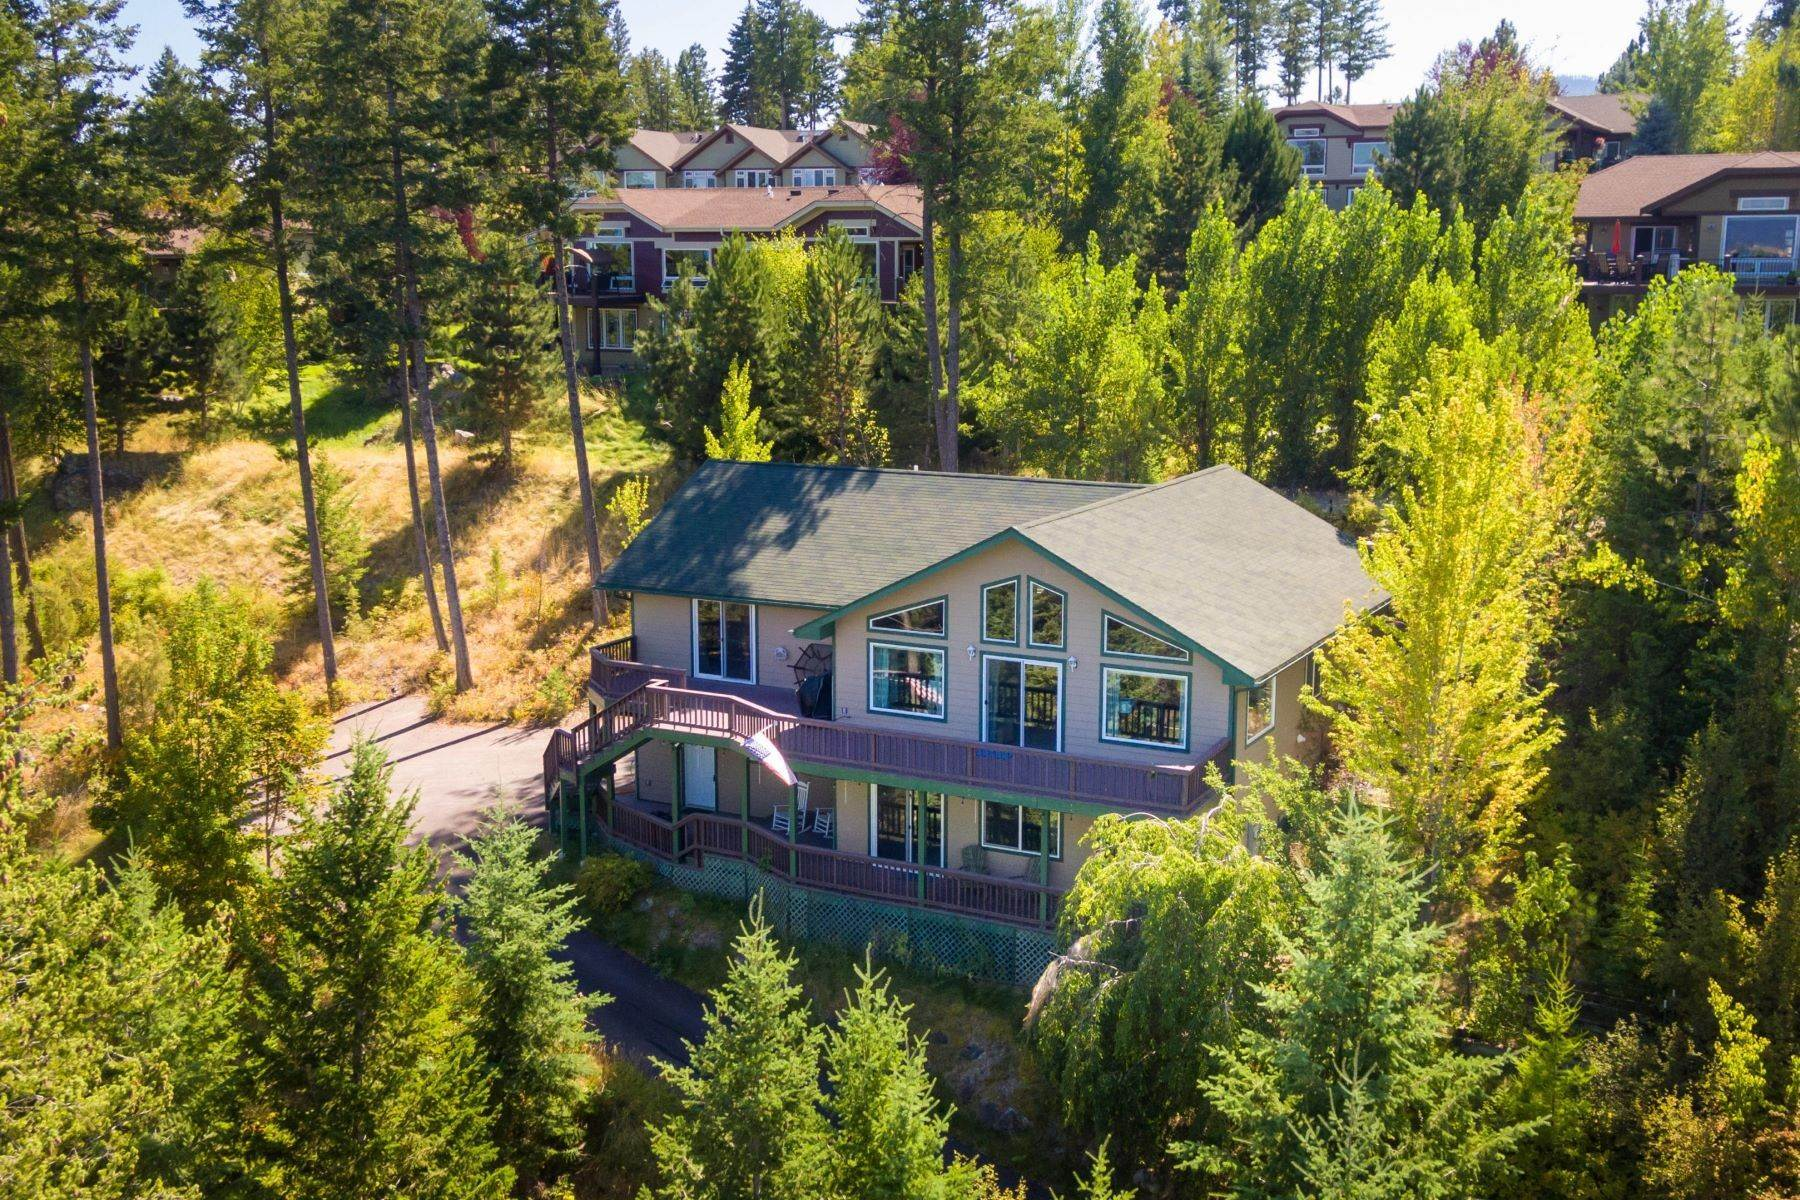 Single Family Homes for Sale at Mission View Family Home 190 Ridgewood Drive Lakeside, Montana 59922 United States